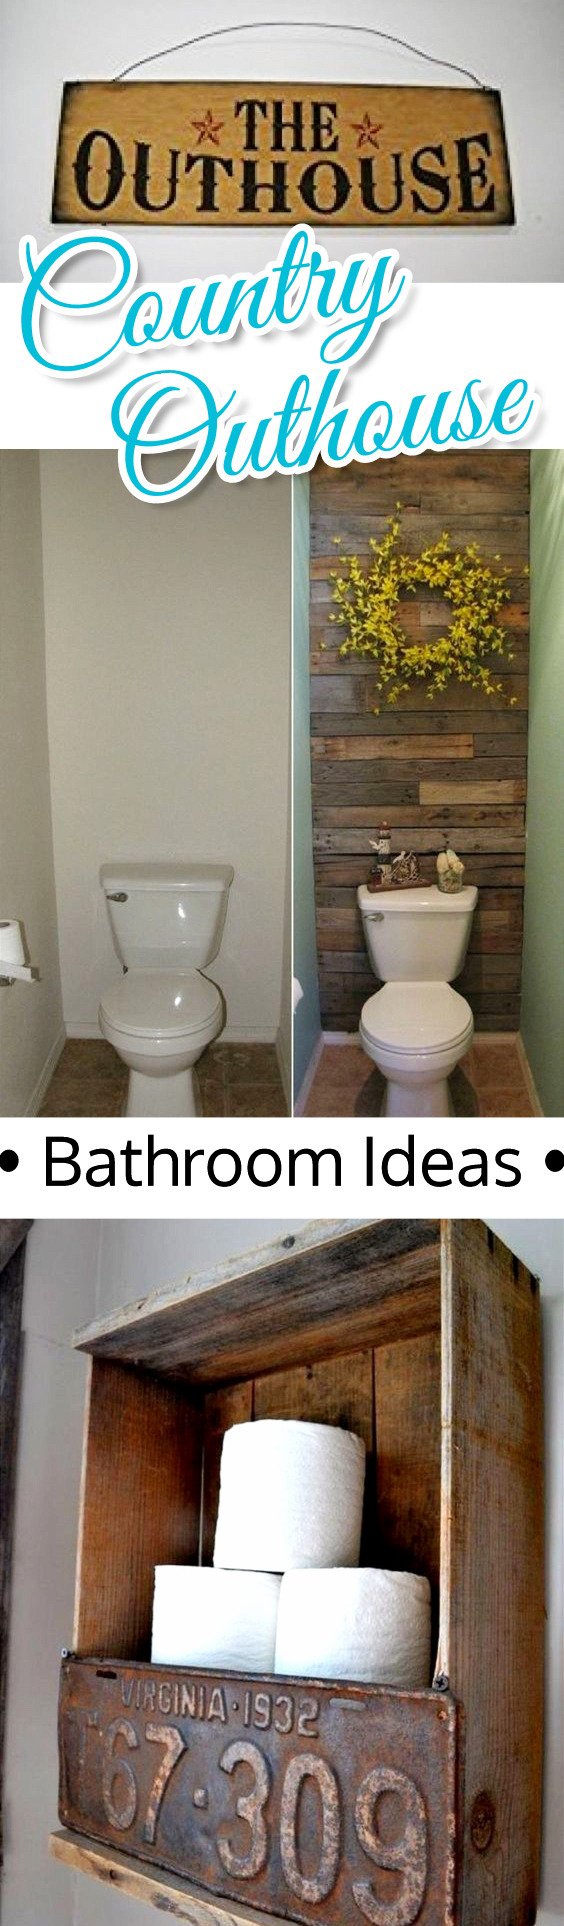 Outhouse Bathroom Decor Lovely Country Outhouse Bathroom Decorating Ideas • Outhouse